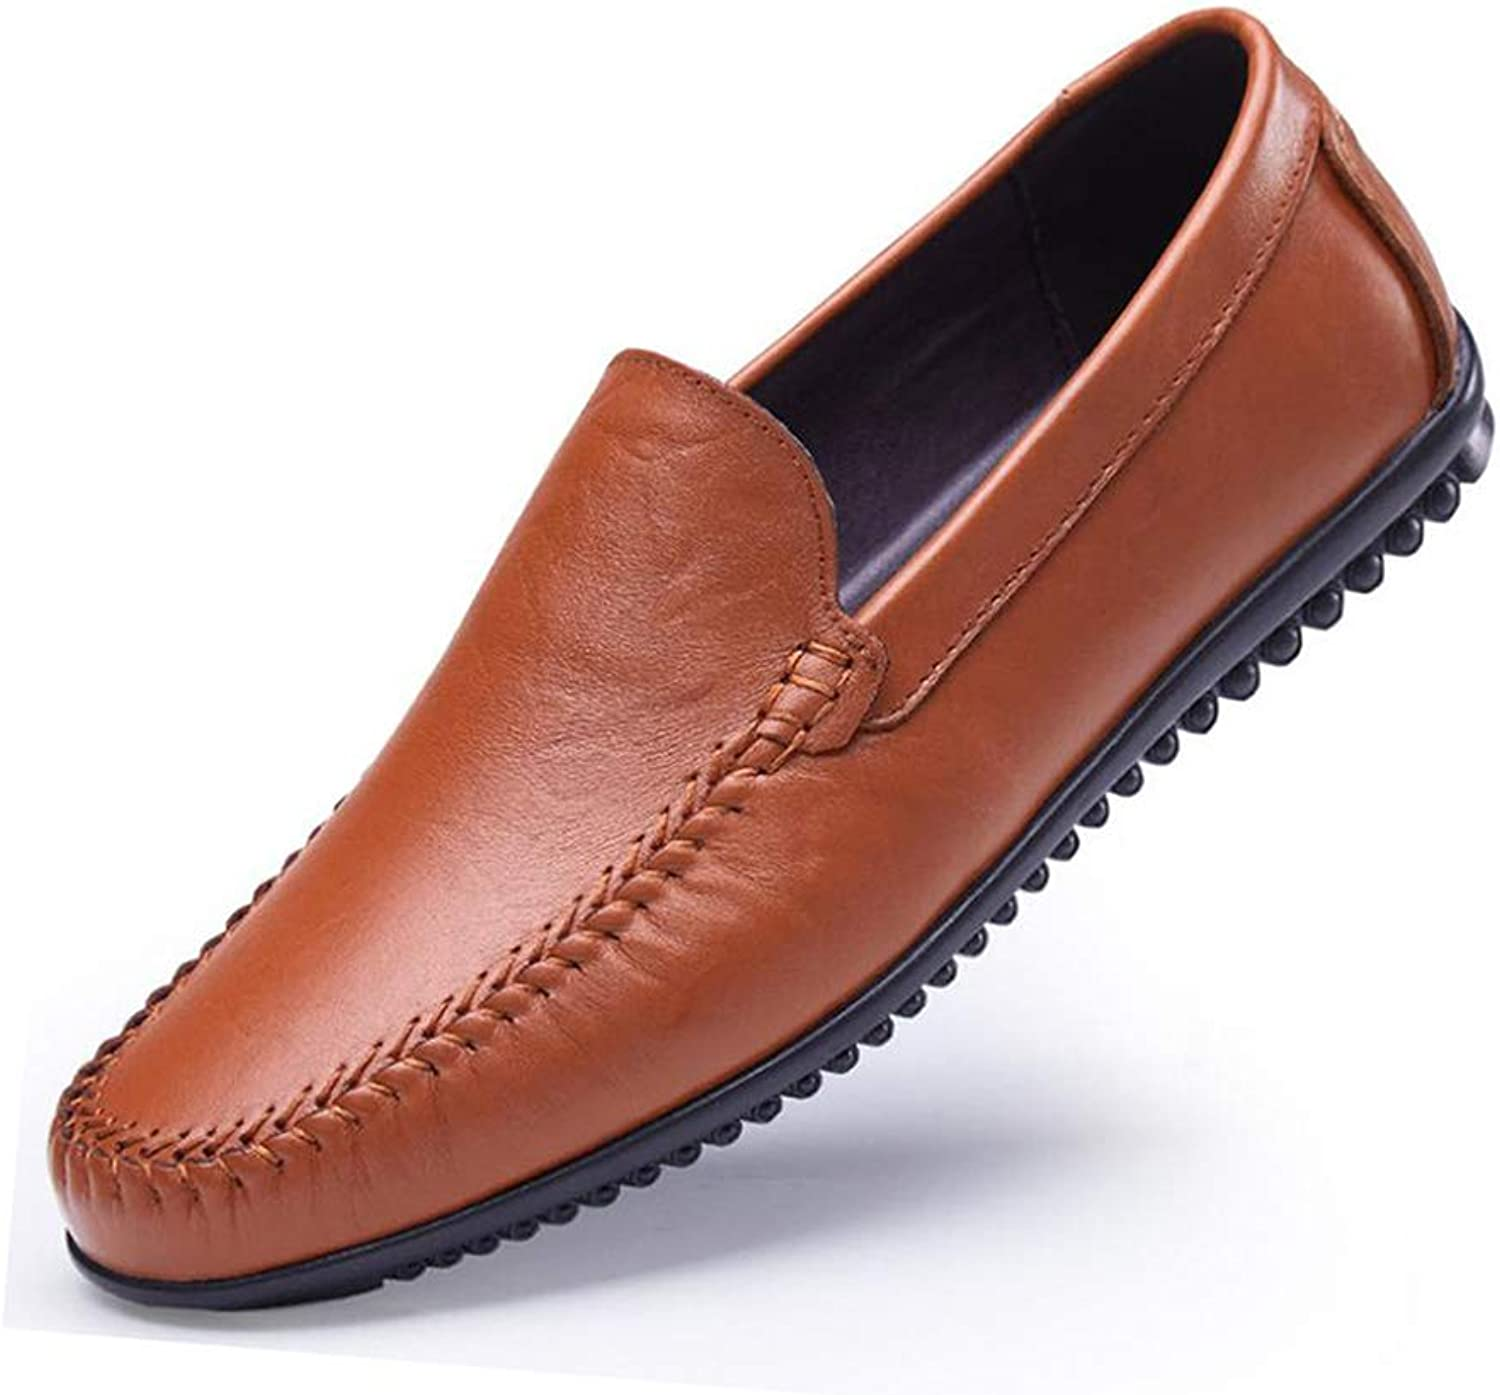 Men's Formal shoes,Casual Flat Loafers Fashion Slip On Driving shoes,Spring Fall Leather Lazy shoes ,Black, Brown